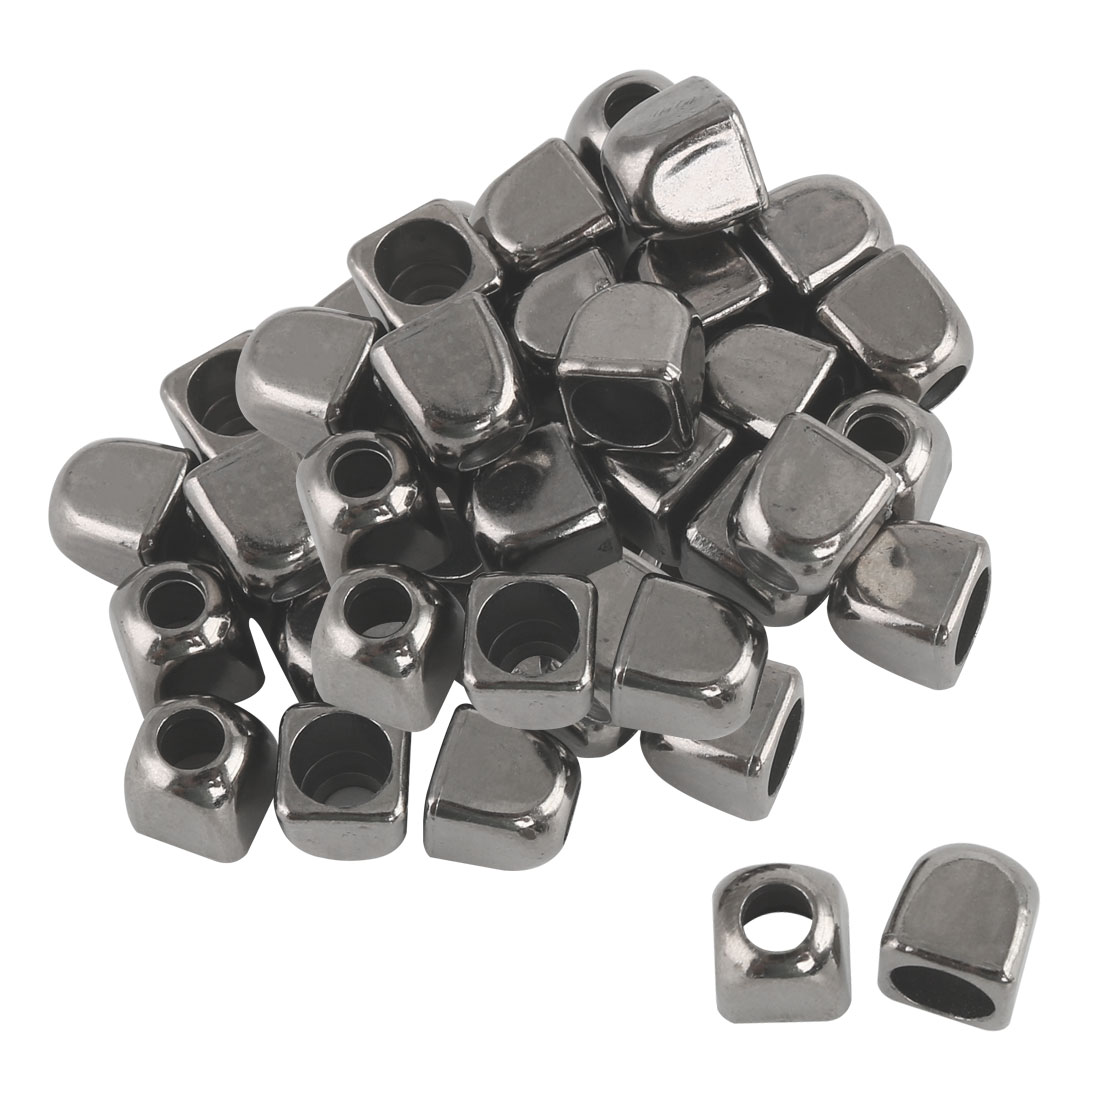 30pcs Plastic Bell End Stopper Square Lace Lock Rope Fastener Silver Black